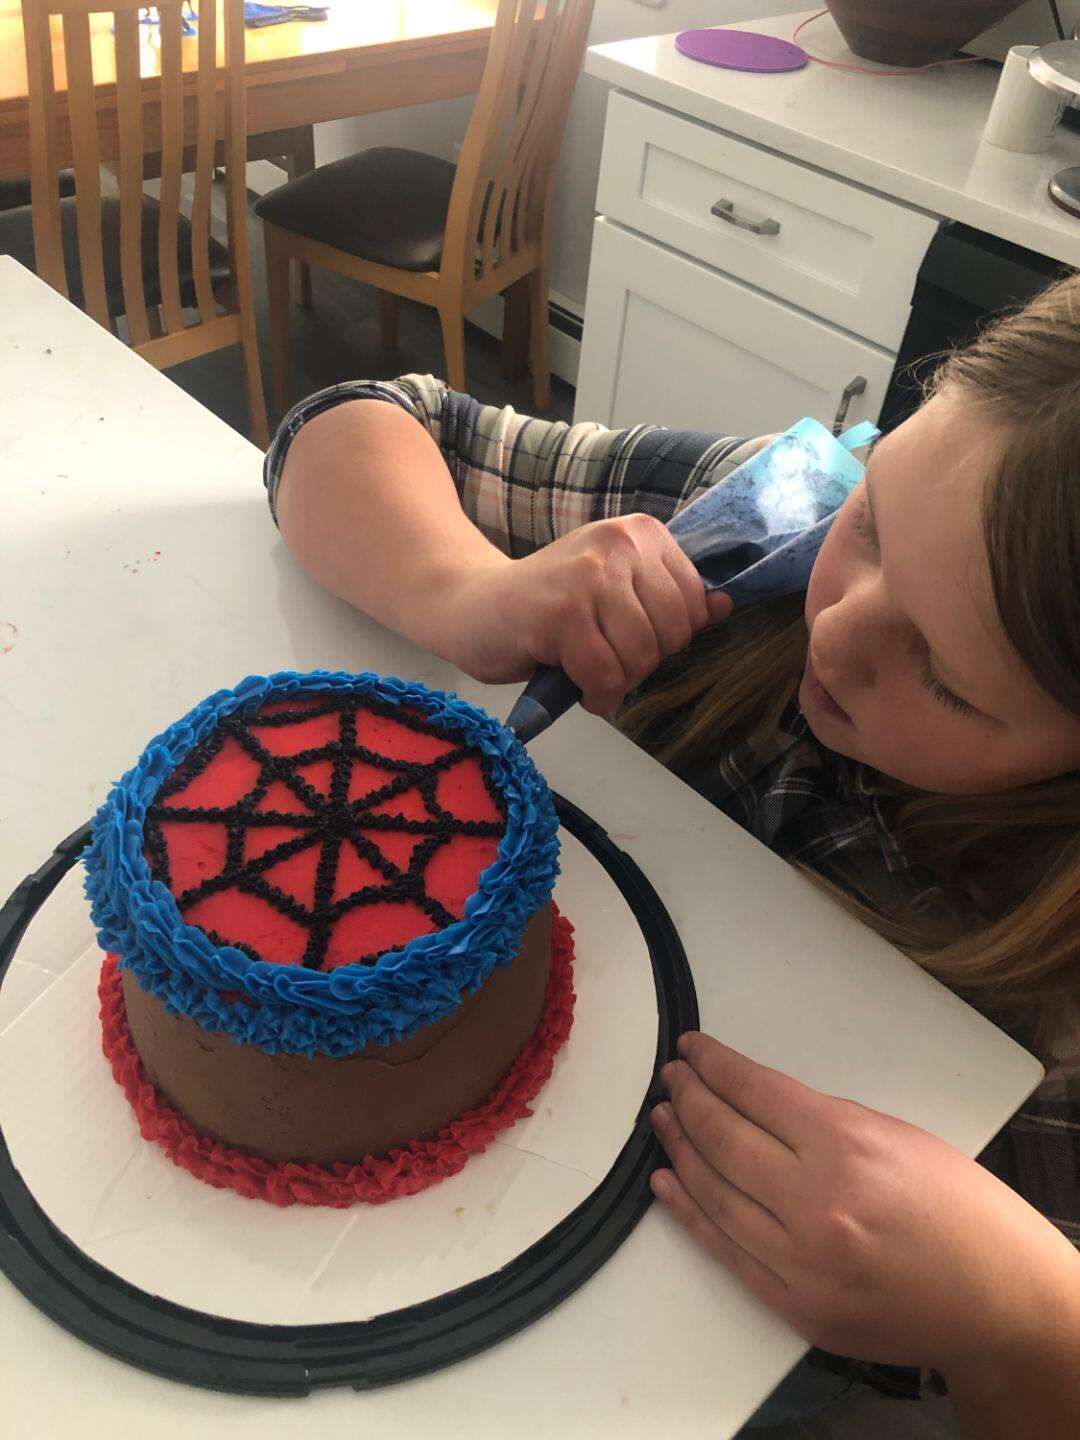 River Close works on a Spiderman-themed cake design. | Photo by Andrea Beacham